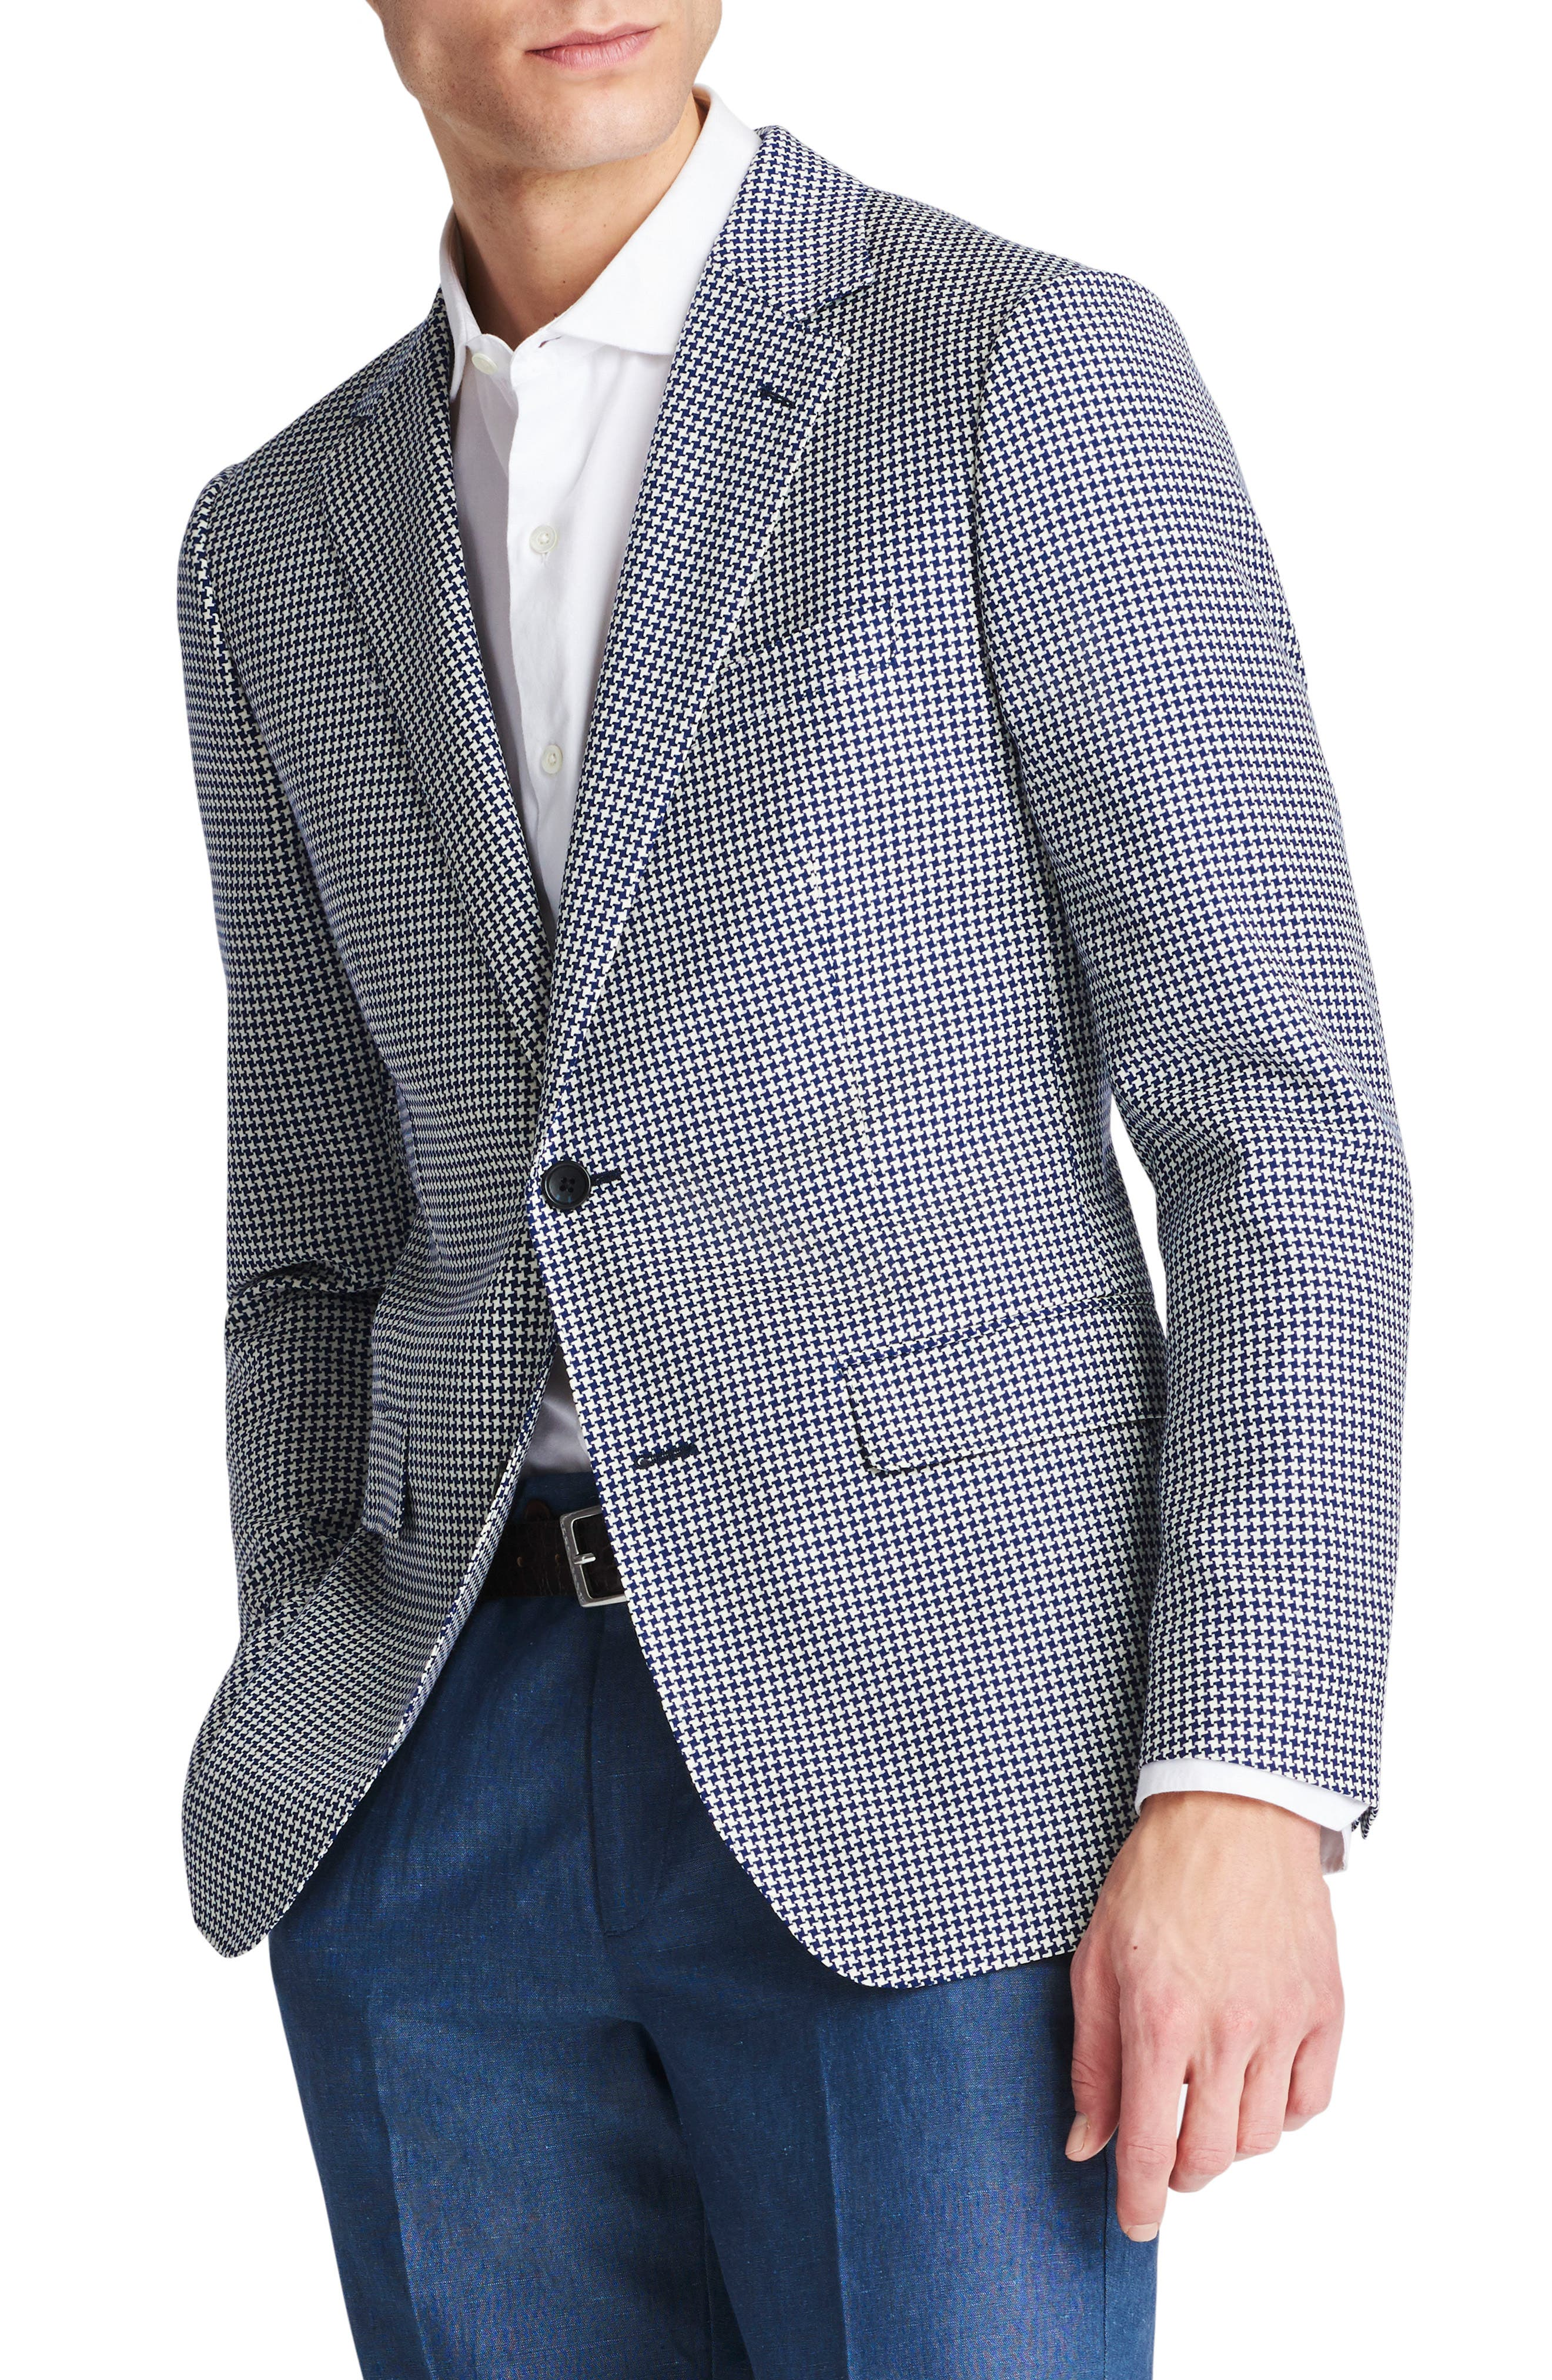 Capstone Slim Fit Houndstooth Wool Sport Coat,                             Alternate thumbnail 3, color,                             Navy White Houndstooth